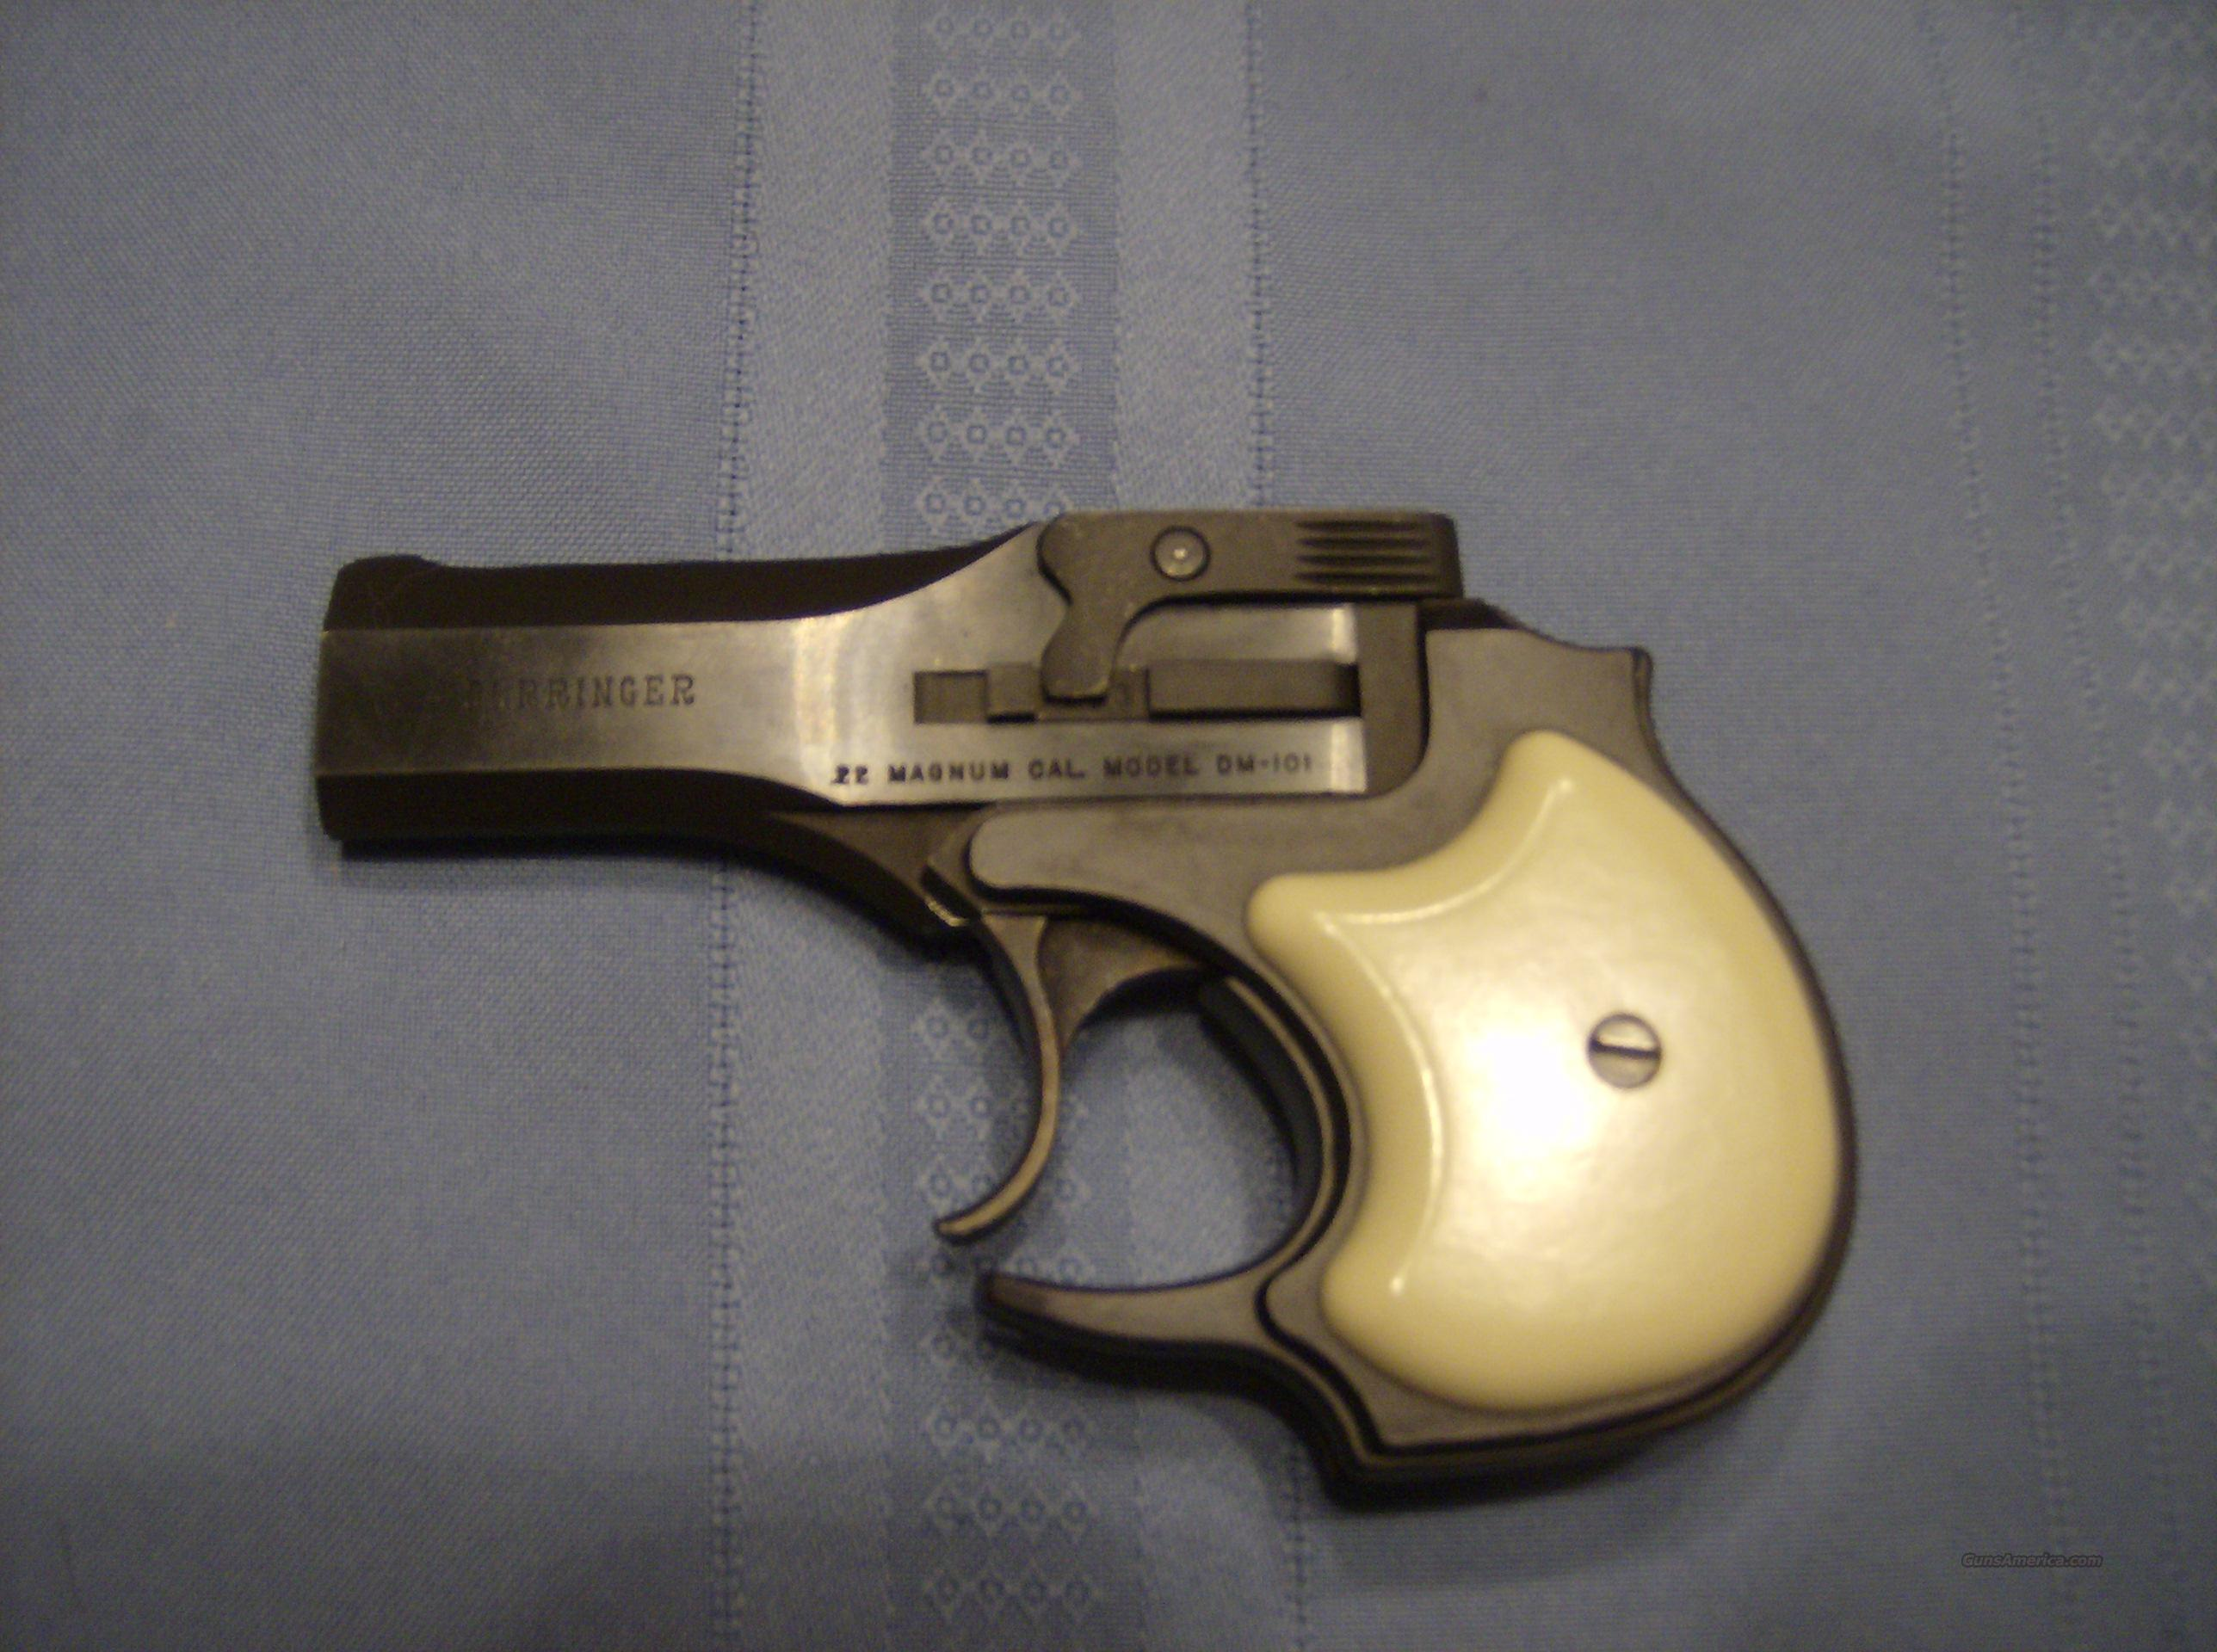 HIGH STANDARD DERRINGER 22 WIN MAG  Guns > Pistols > High Standard Pistols